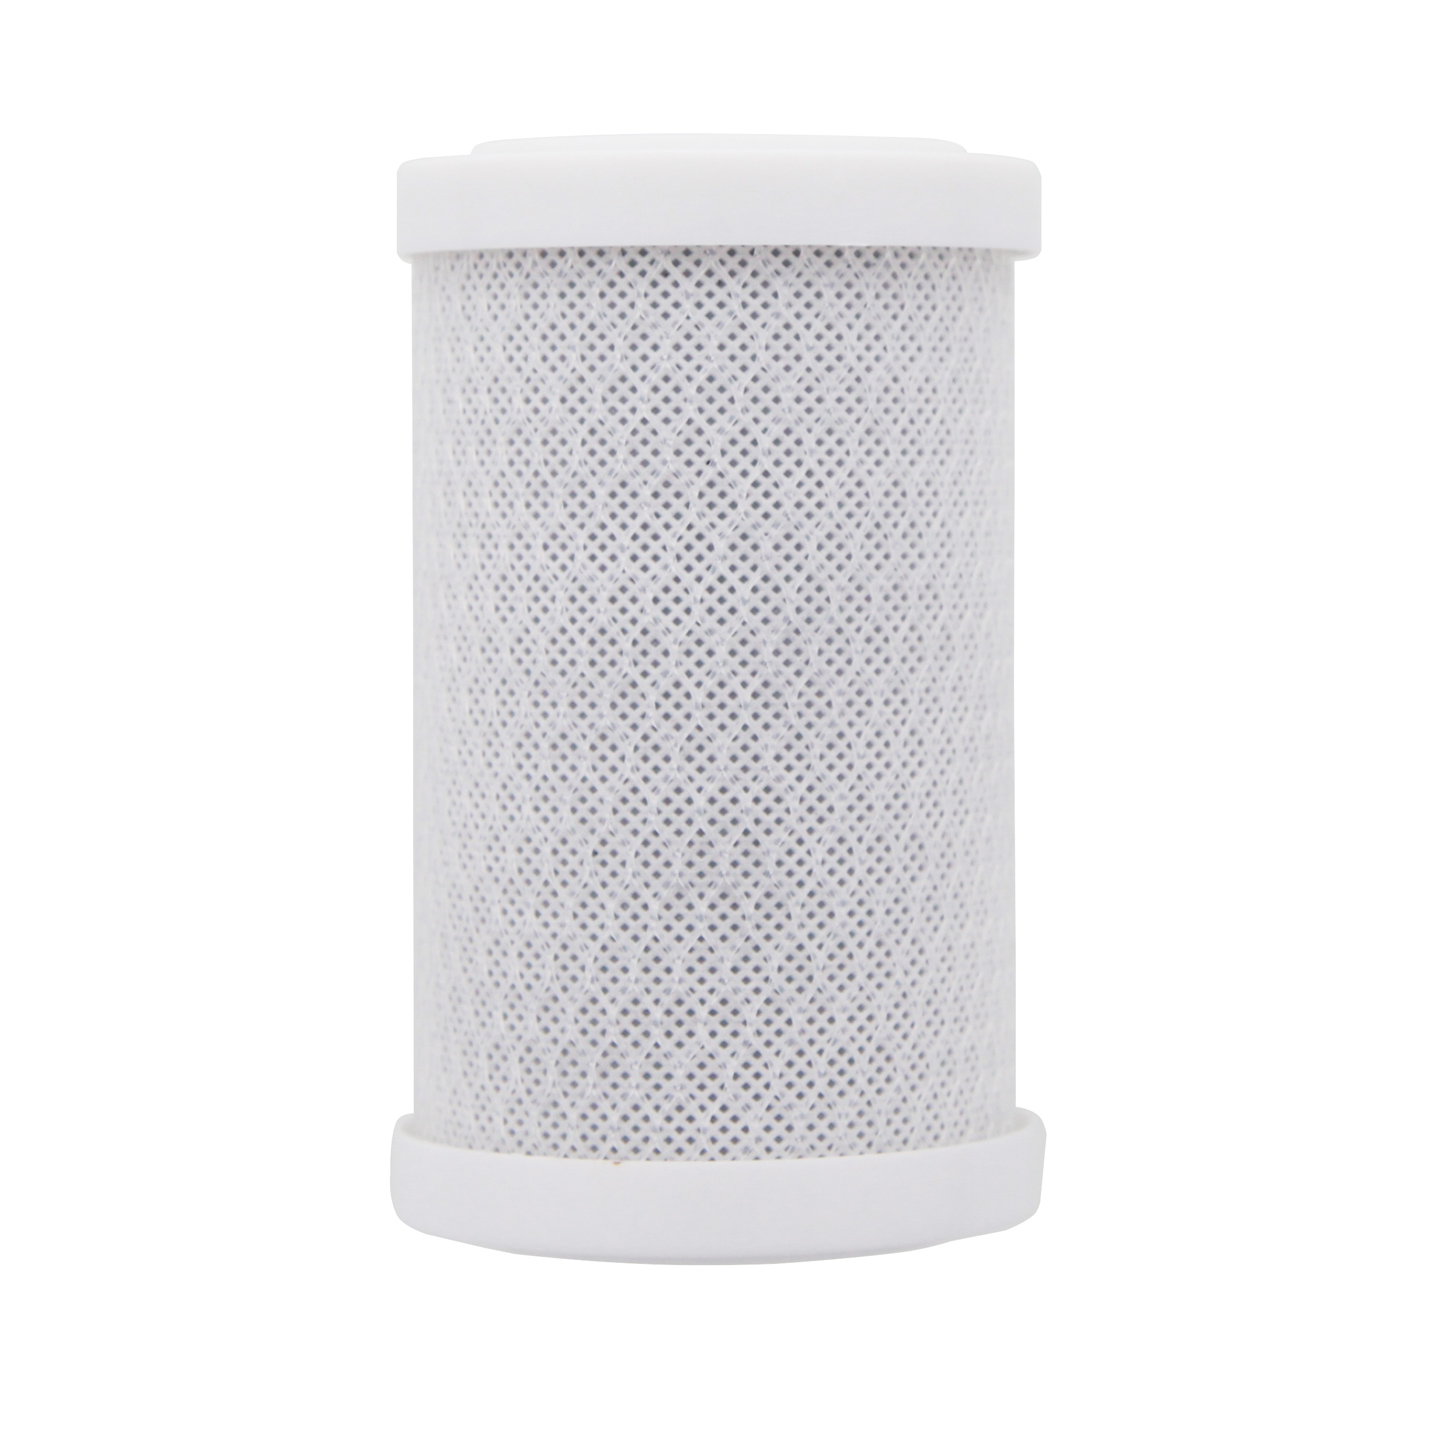 Hydronix CB-25-0505 Replacement Carbon Water Filter 5-inch x 2.5-inch (5 Micron) HYDRONIX-CB-25-0505